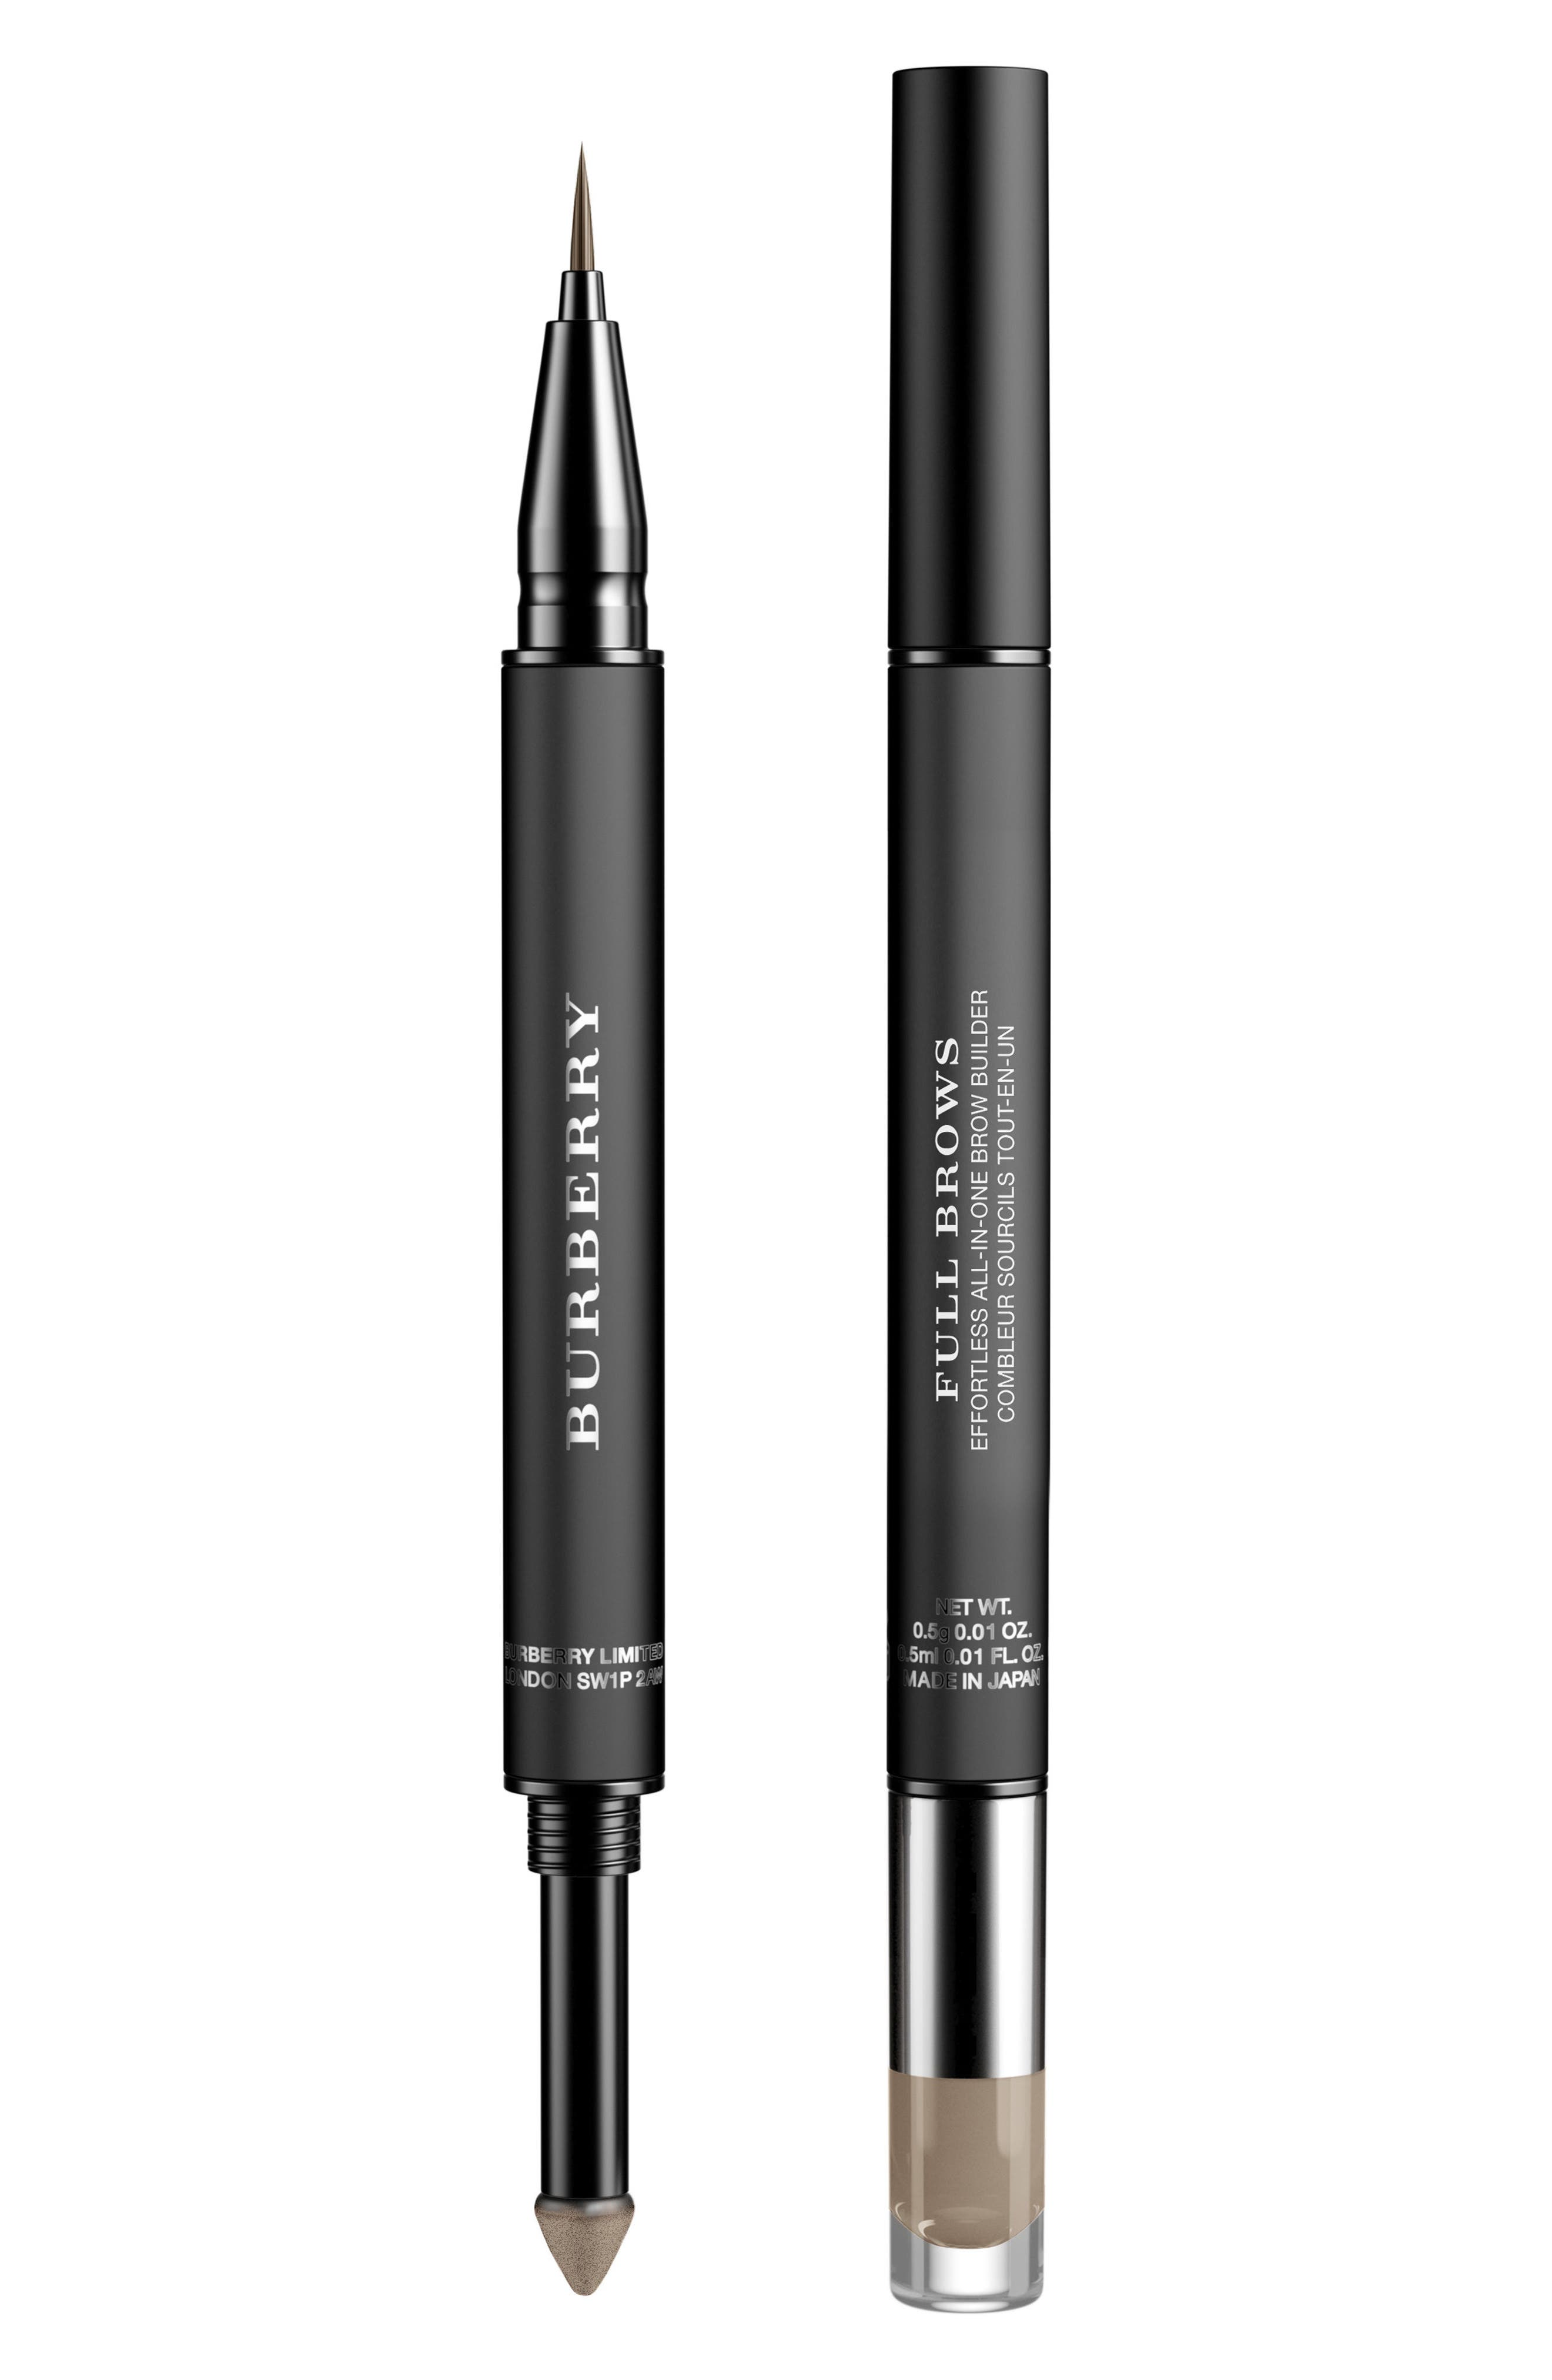 Burberry Beauty Full Brows Effortless All-in-One Brow Builder